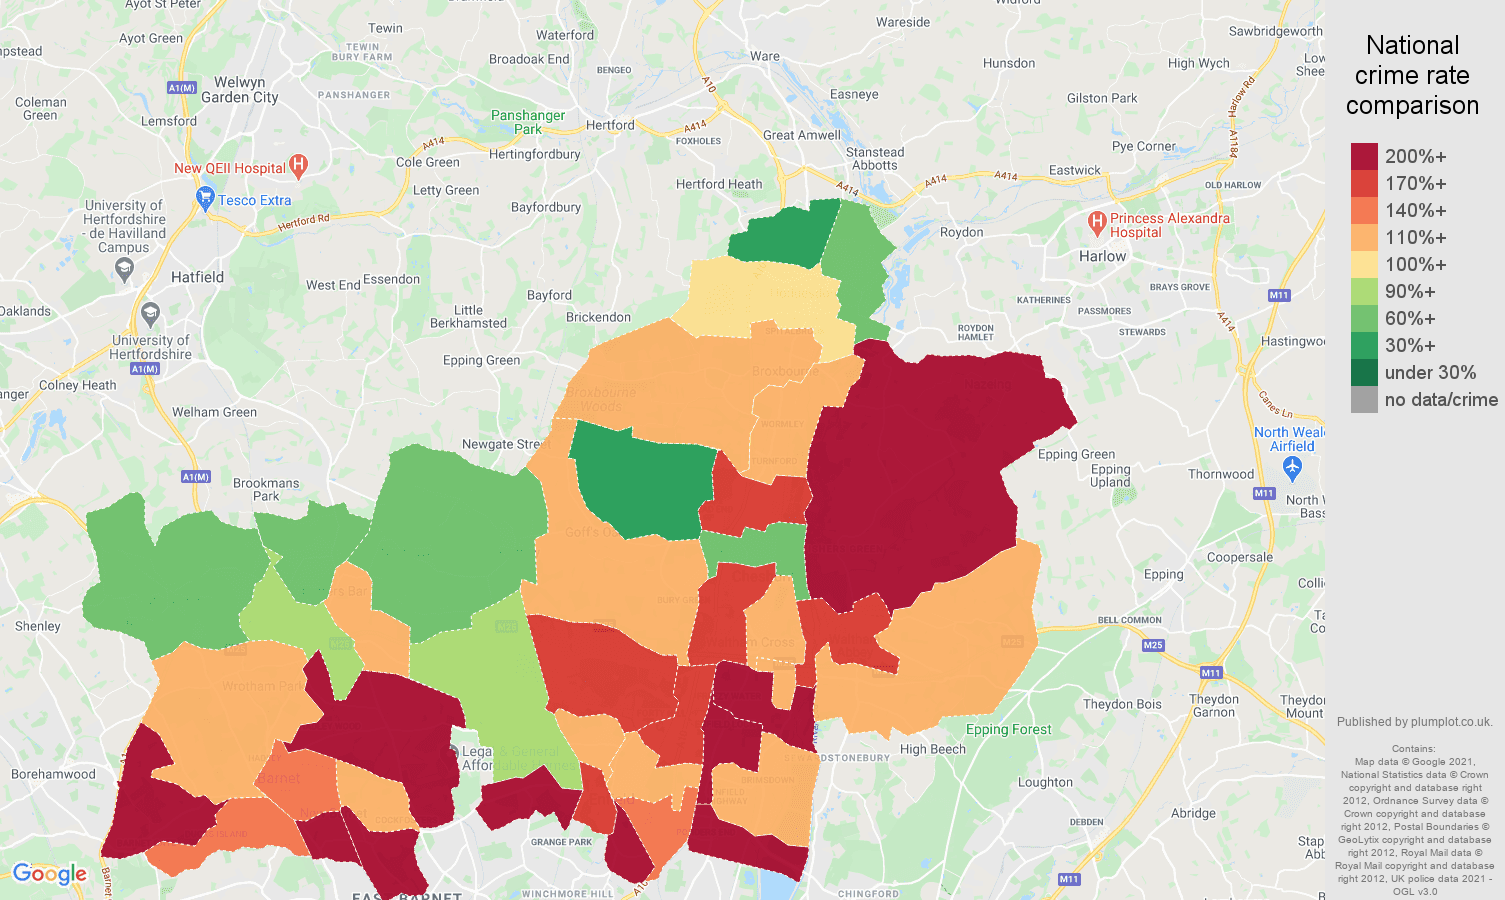 Enfield burglary crime rate comparison map